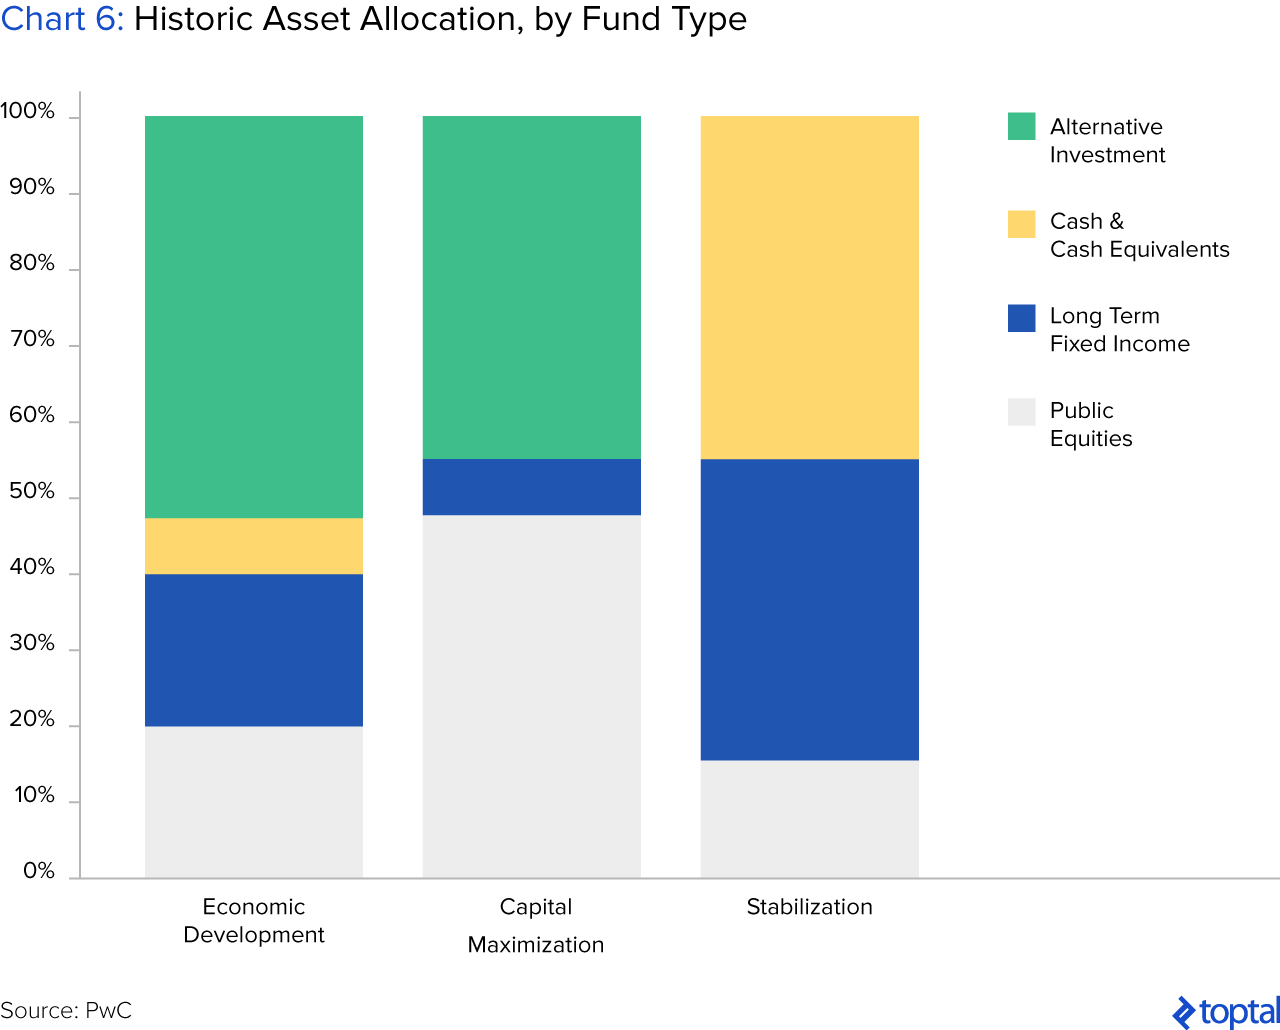 Chart 6: Historic Asset Allocation, by Fund Type